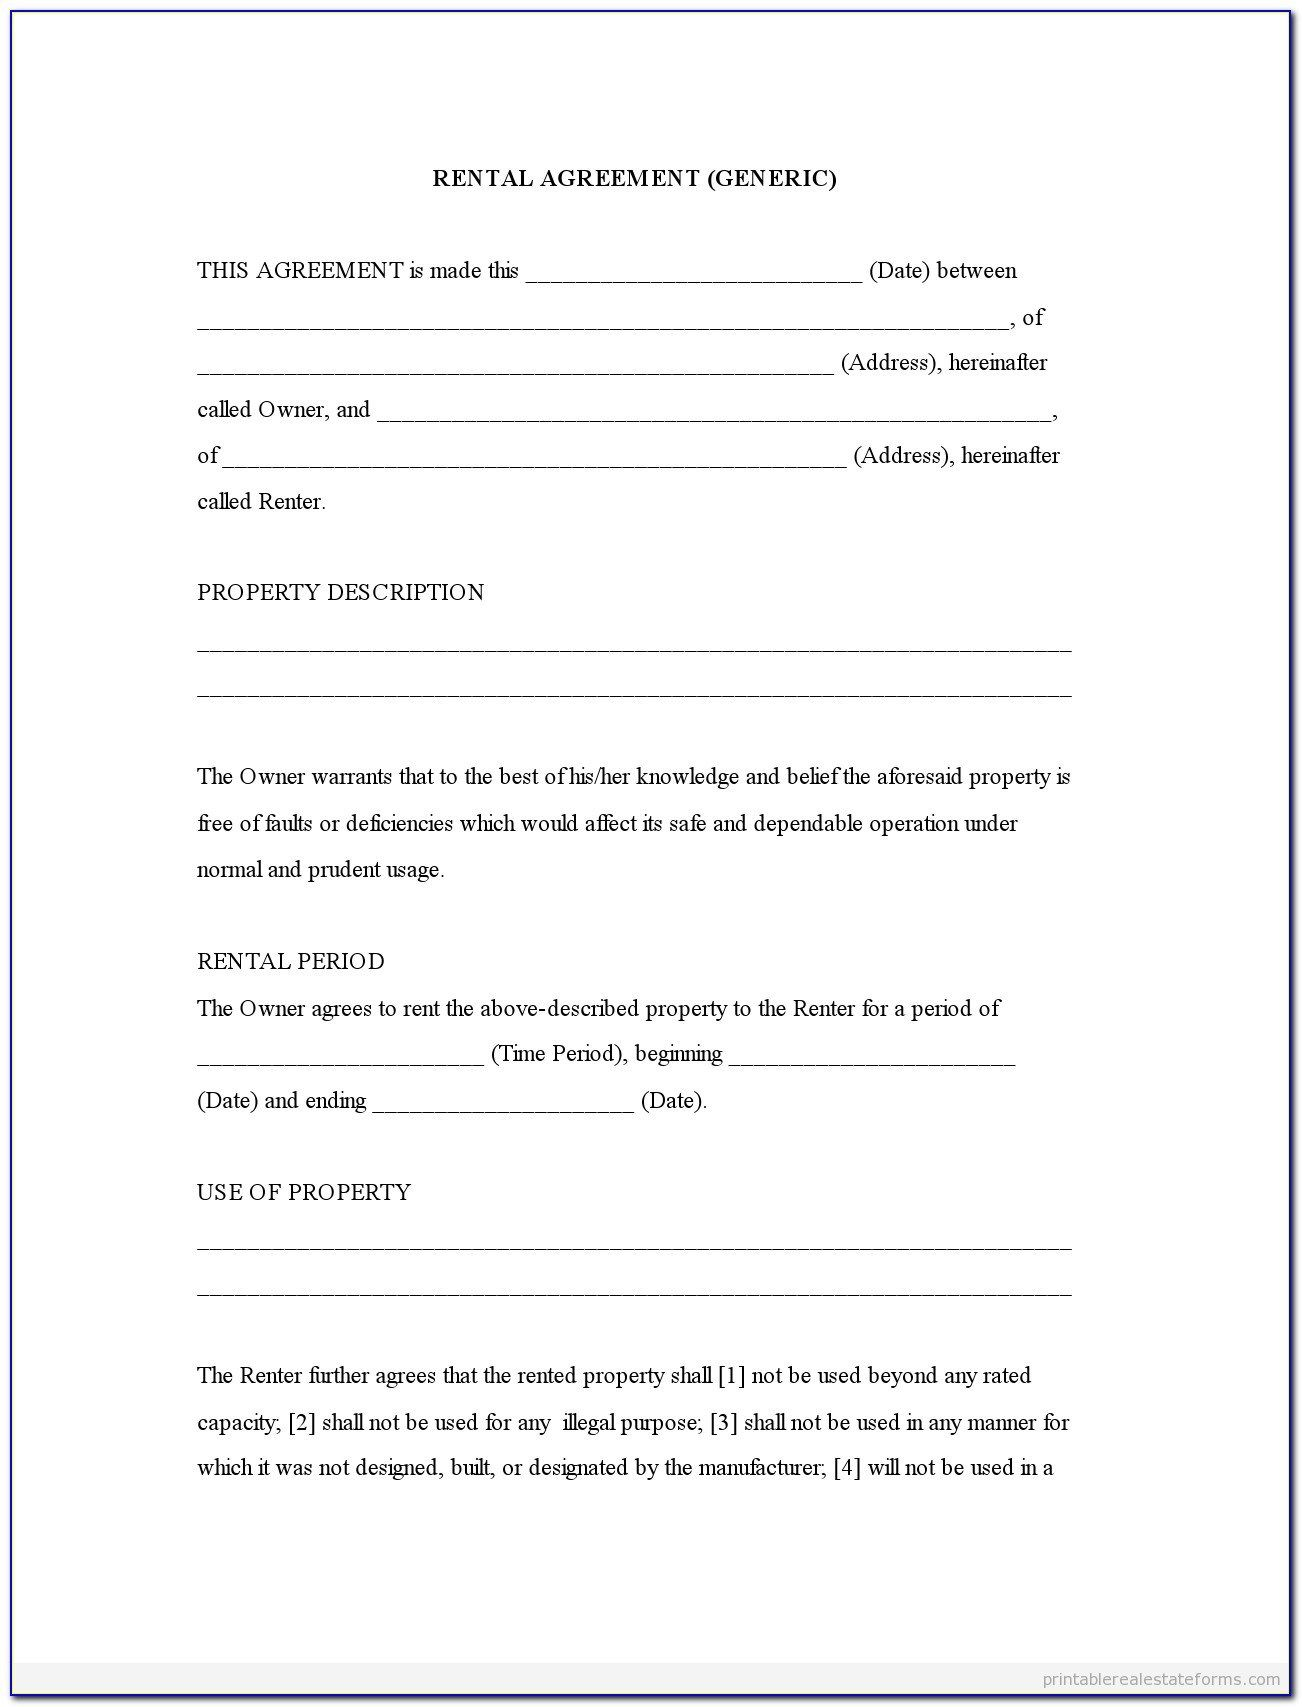 004 Exceptional Rental Agreement Template Word Free Picture  Tenancy ShortholdFull